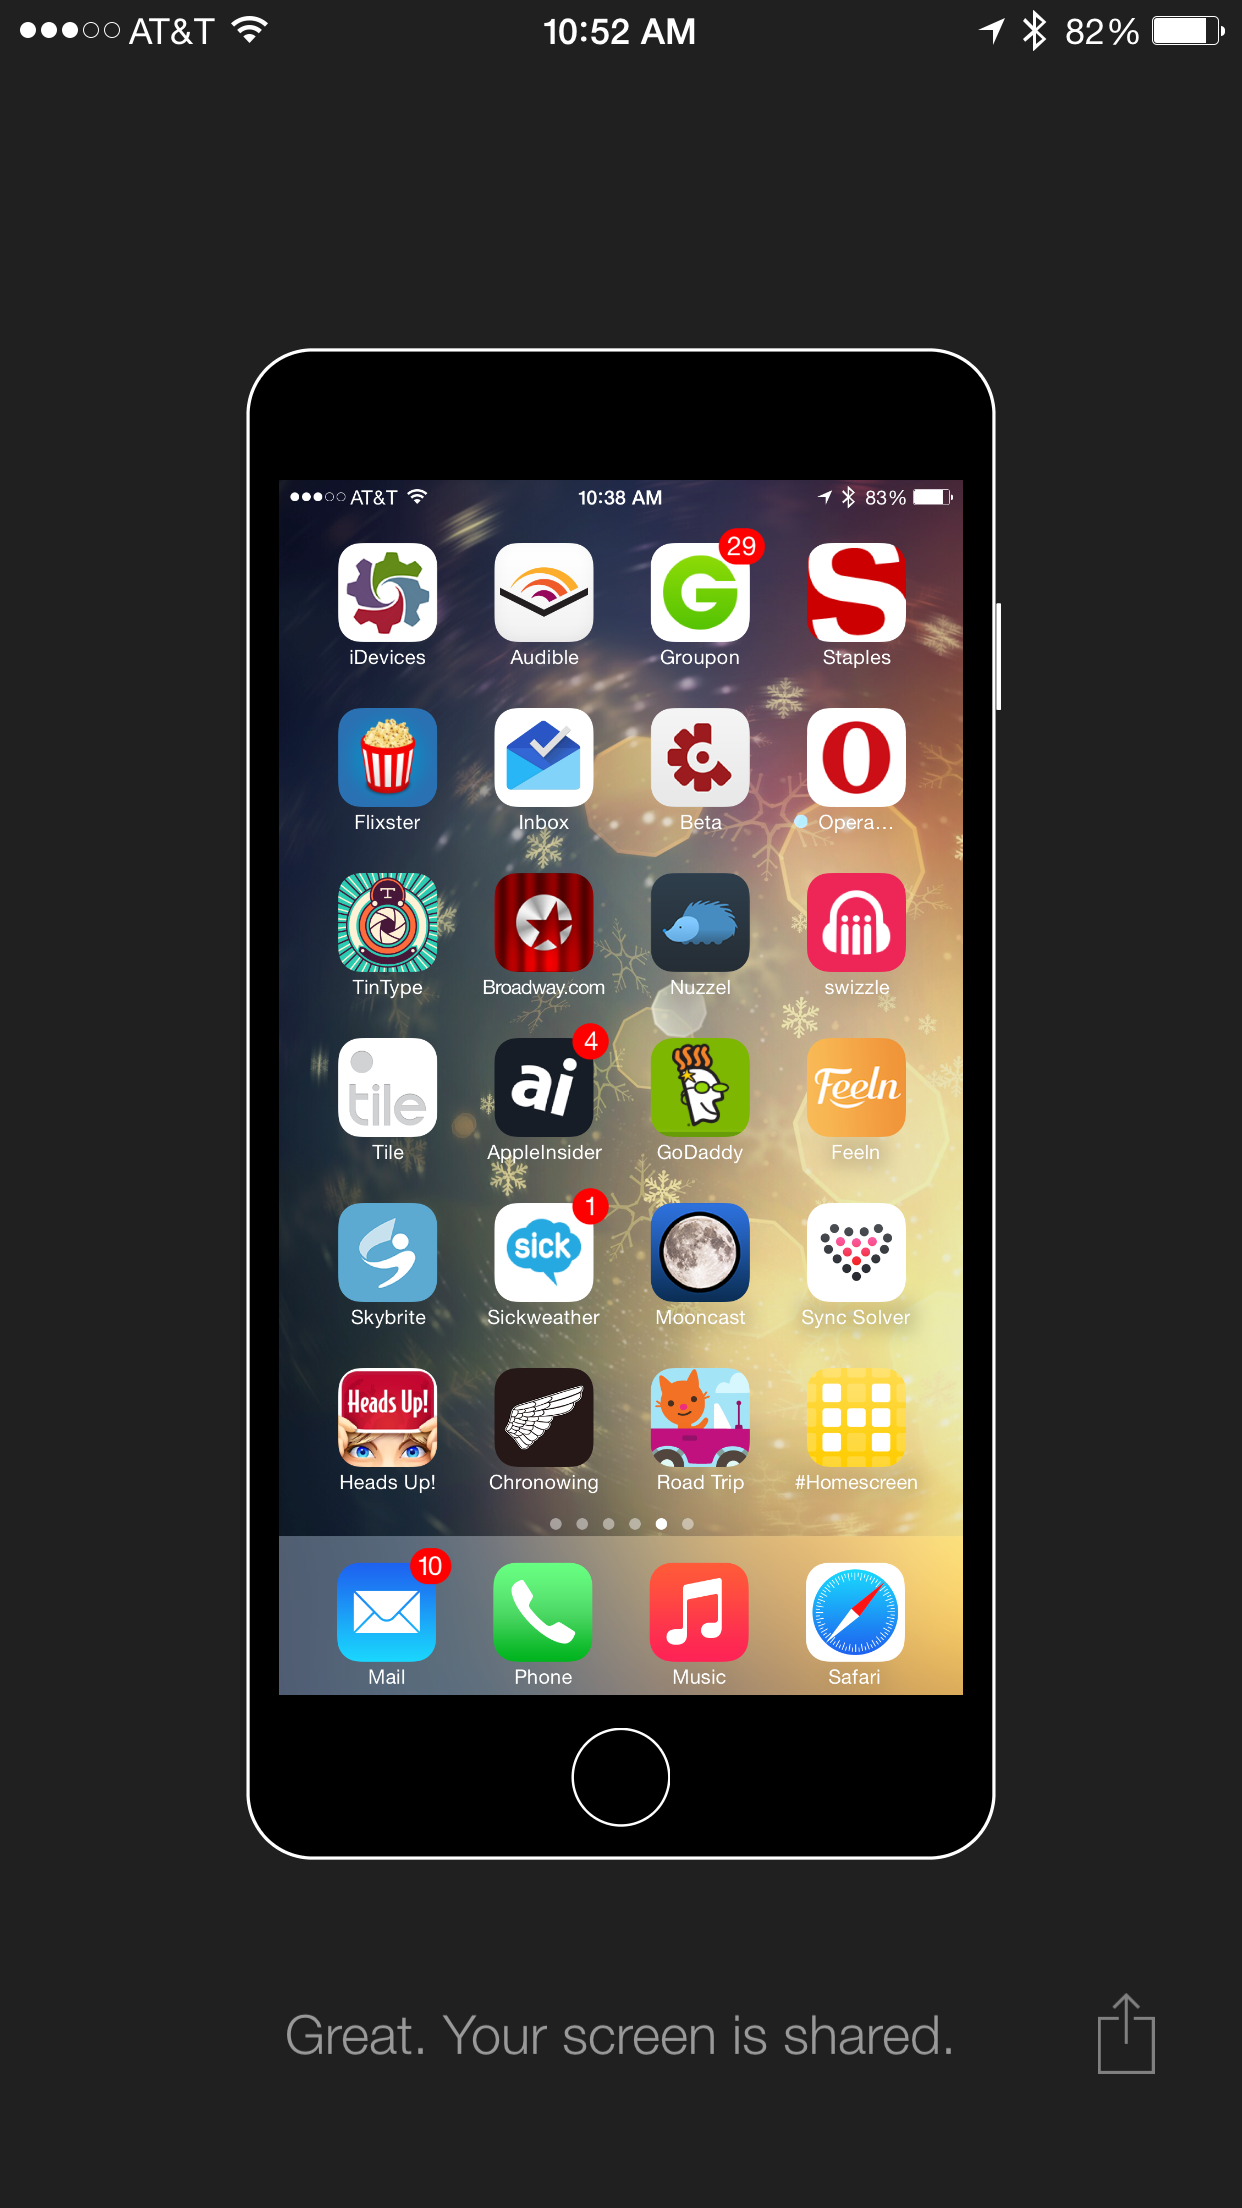 View the 'Top Apps This Week' courtesy of the new iPhone #Homescreen app